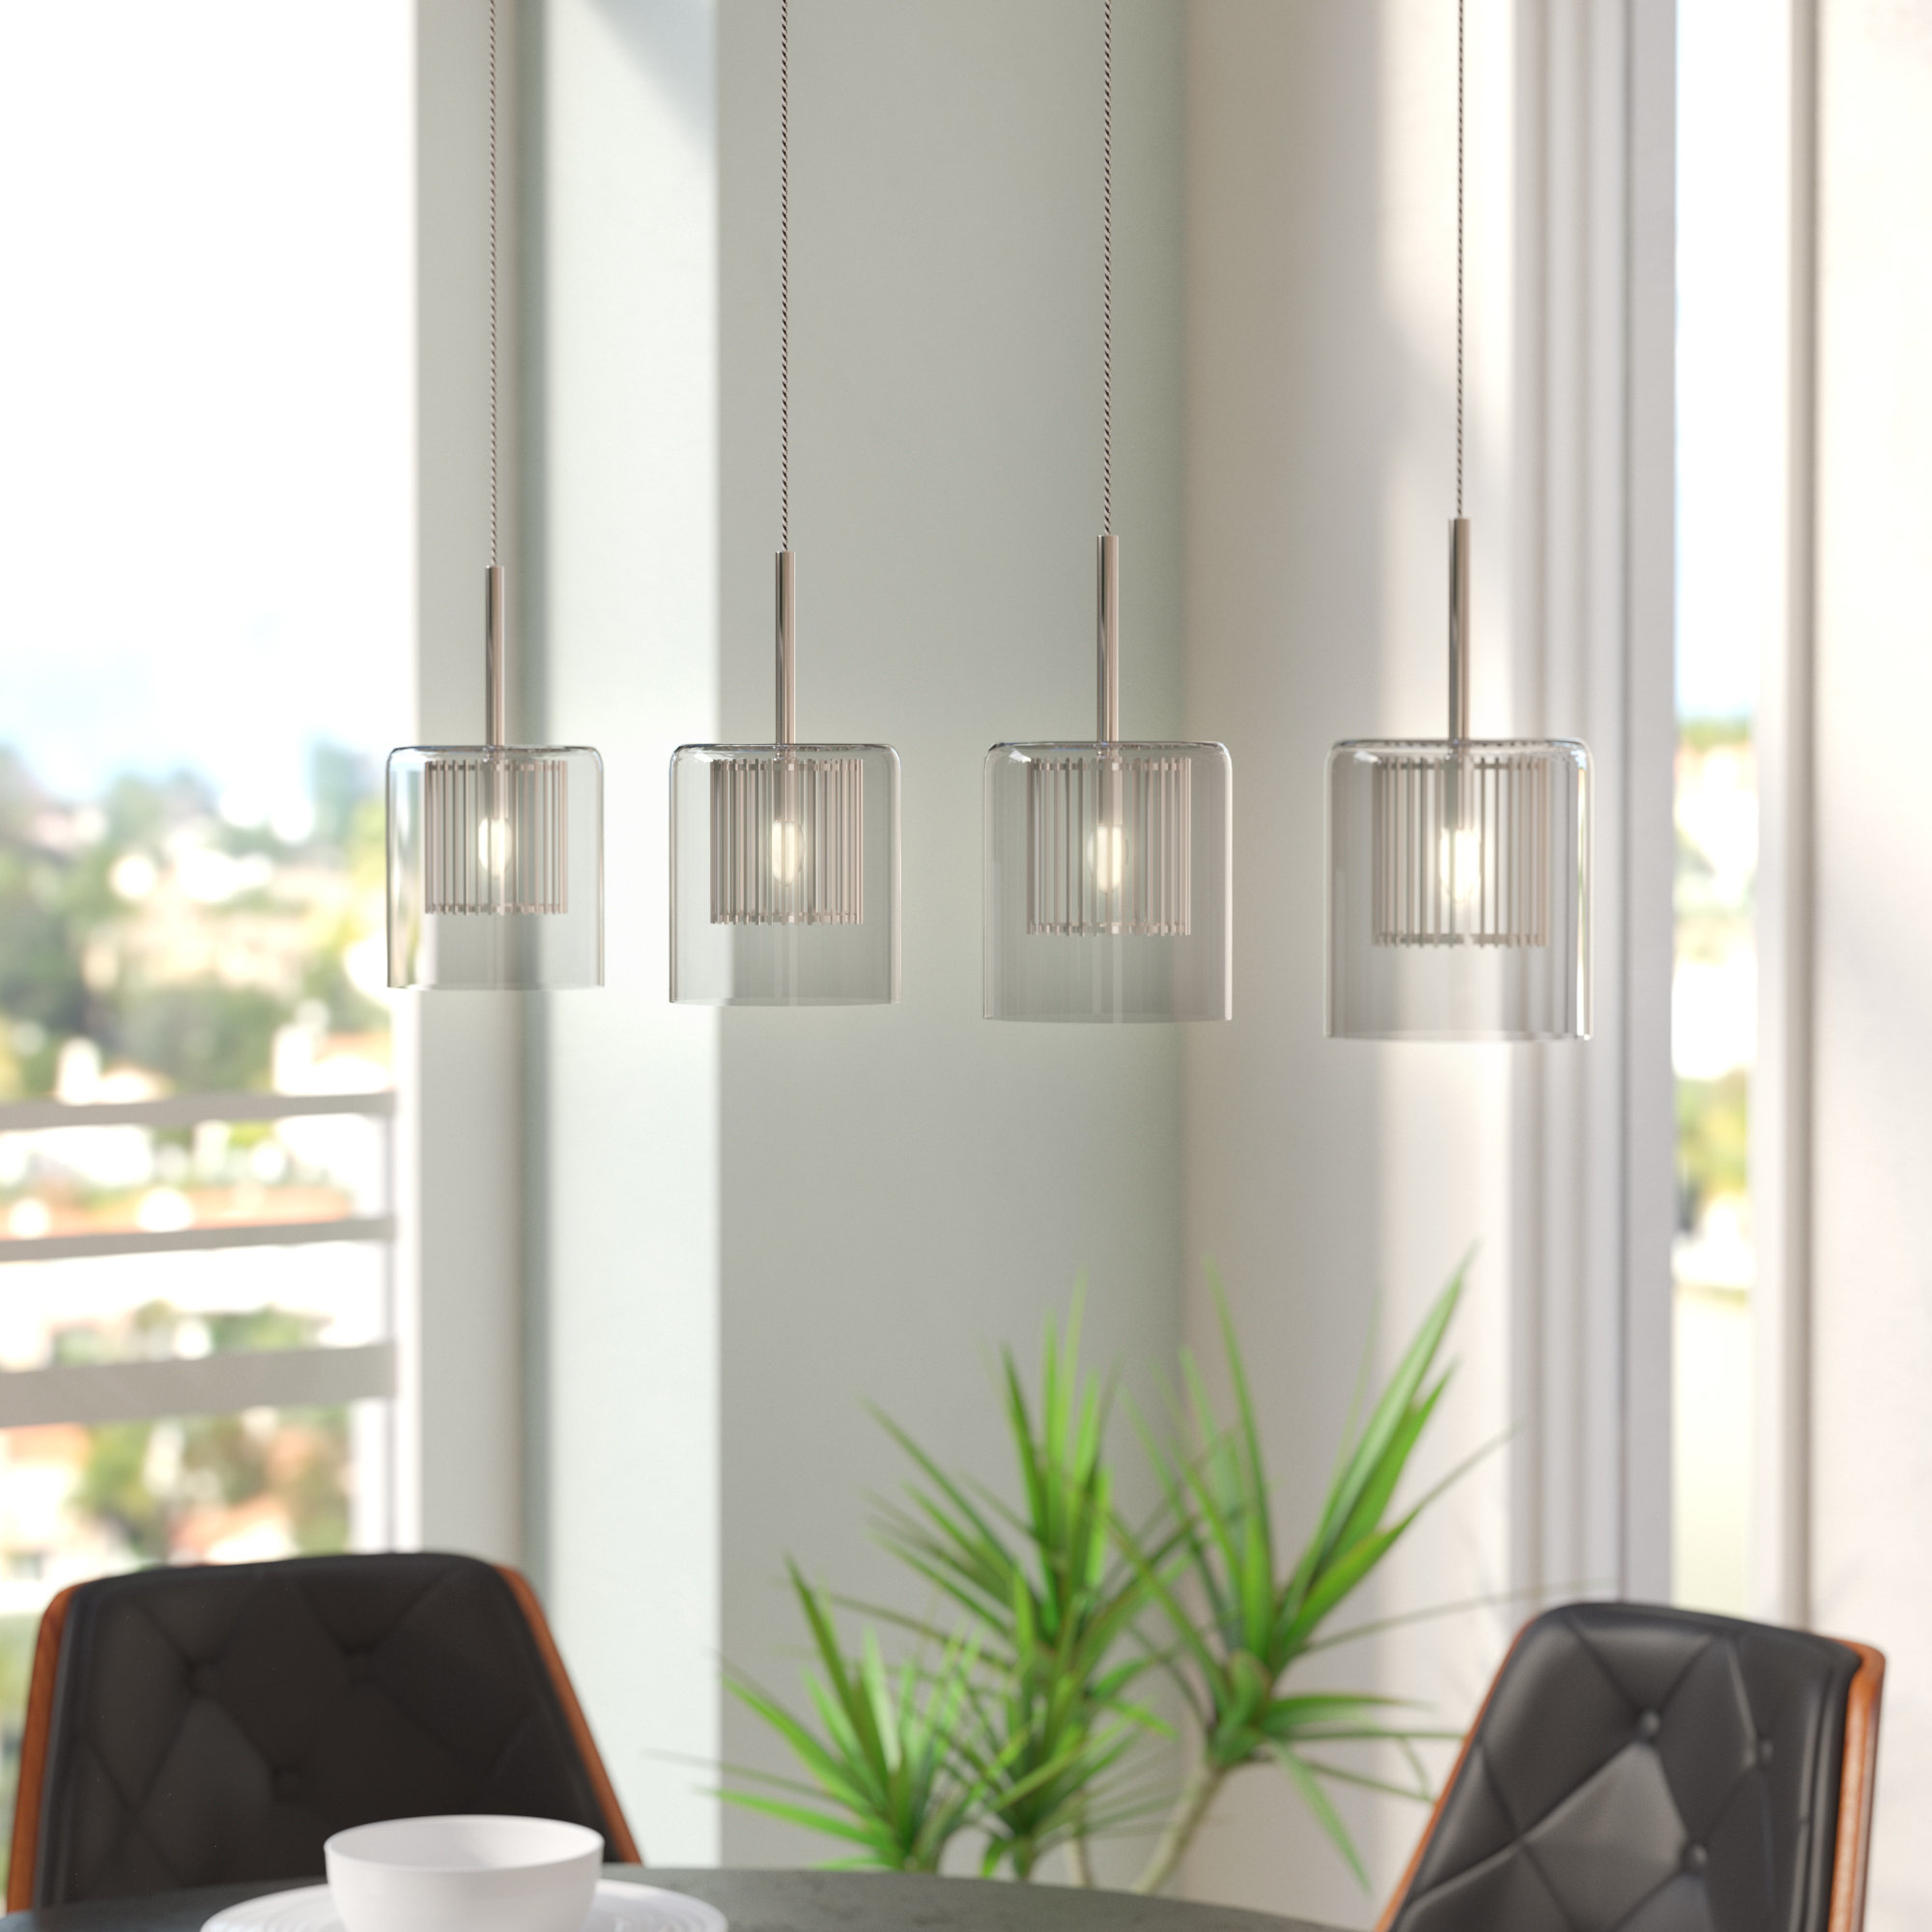 Well Liked Sousa 4 Light Kitchen Island Linear Pendants Pertaining To Cephas 4 Light Kitchen Island Linear Pendant (View 7 of 25)